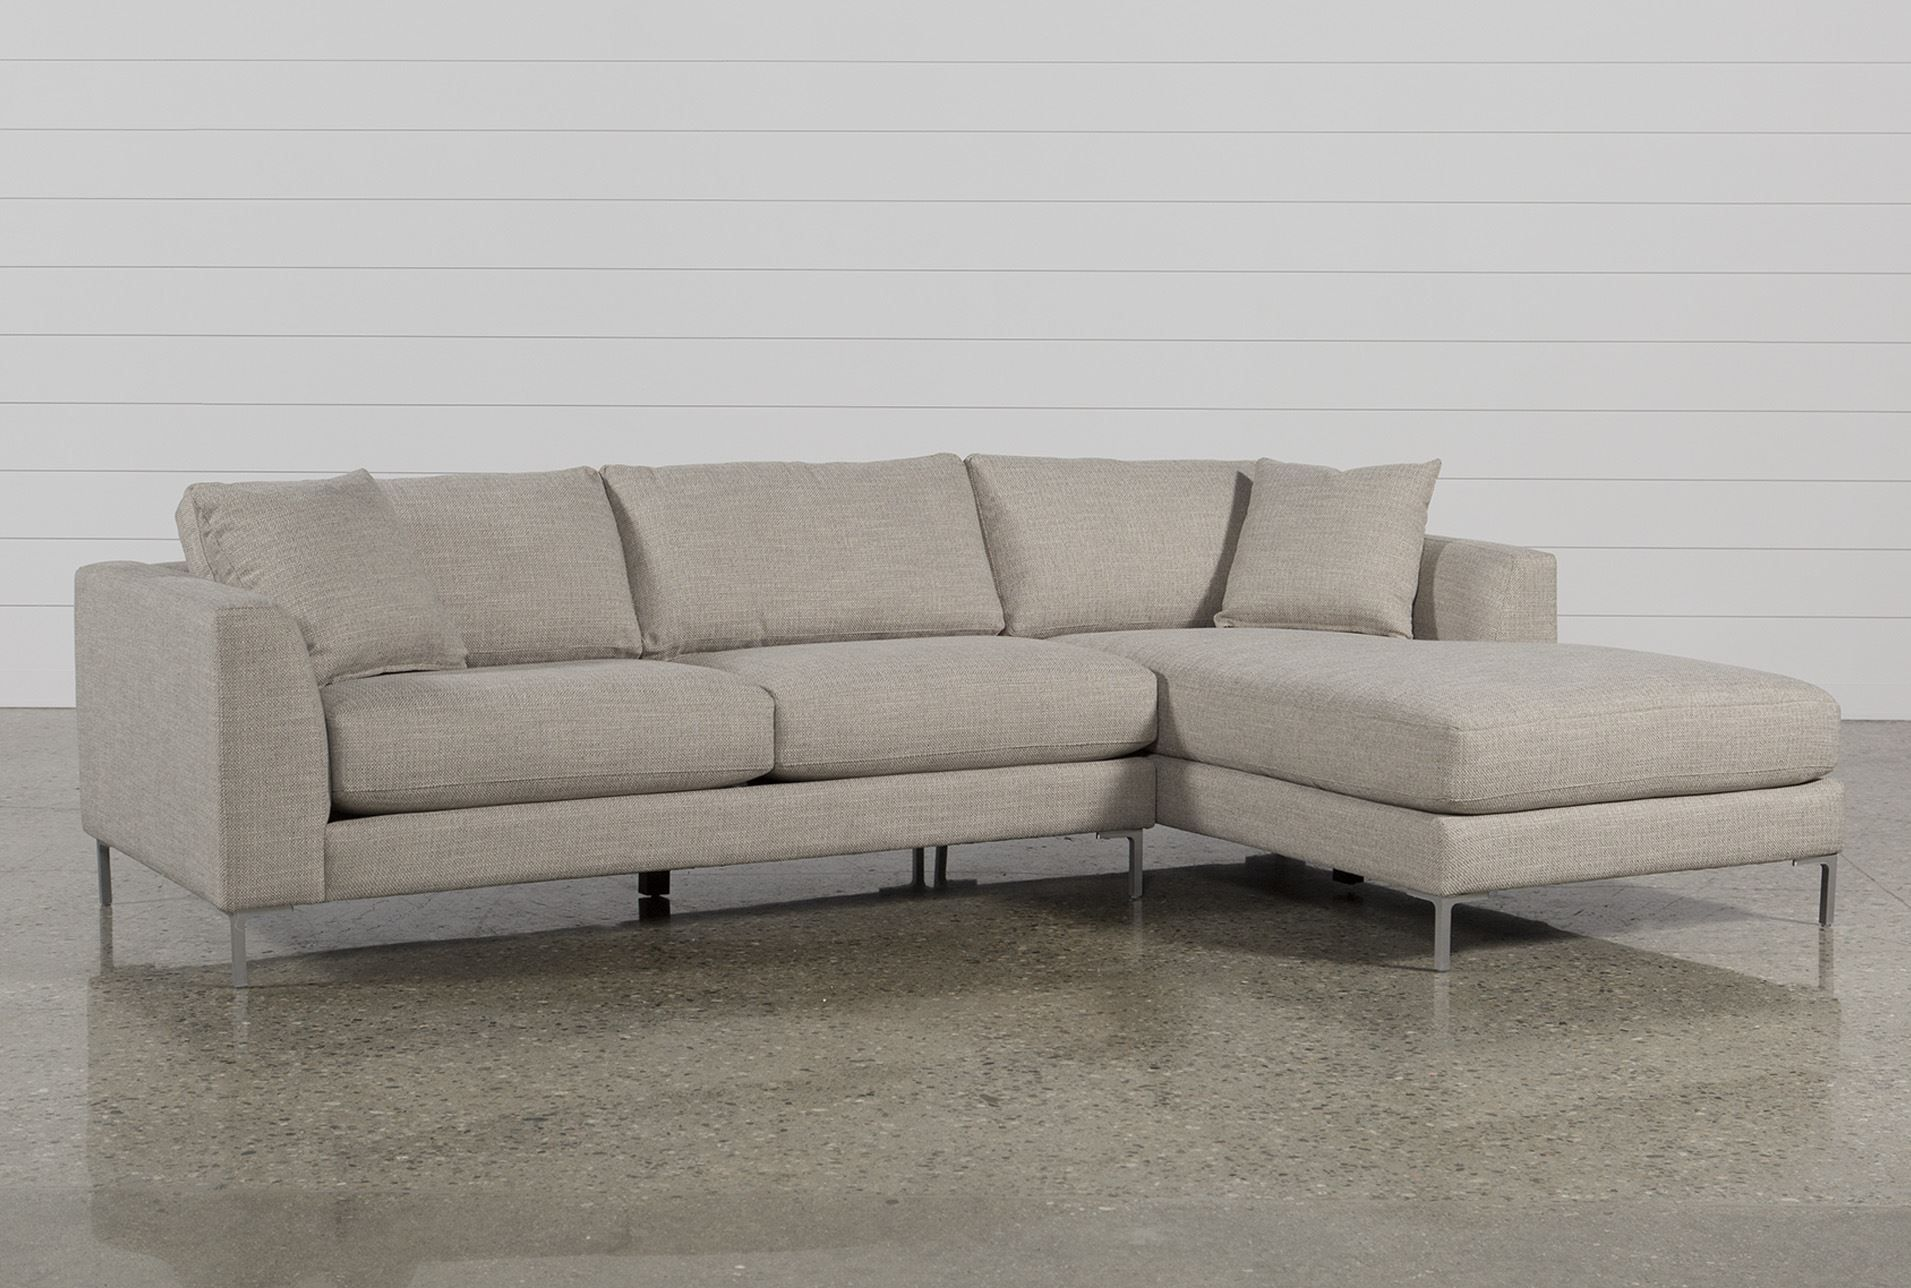 High Quality Stella 2 Piece Condo Sectional W/Raf Chaise   Signature